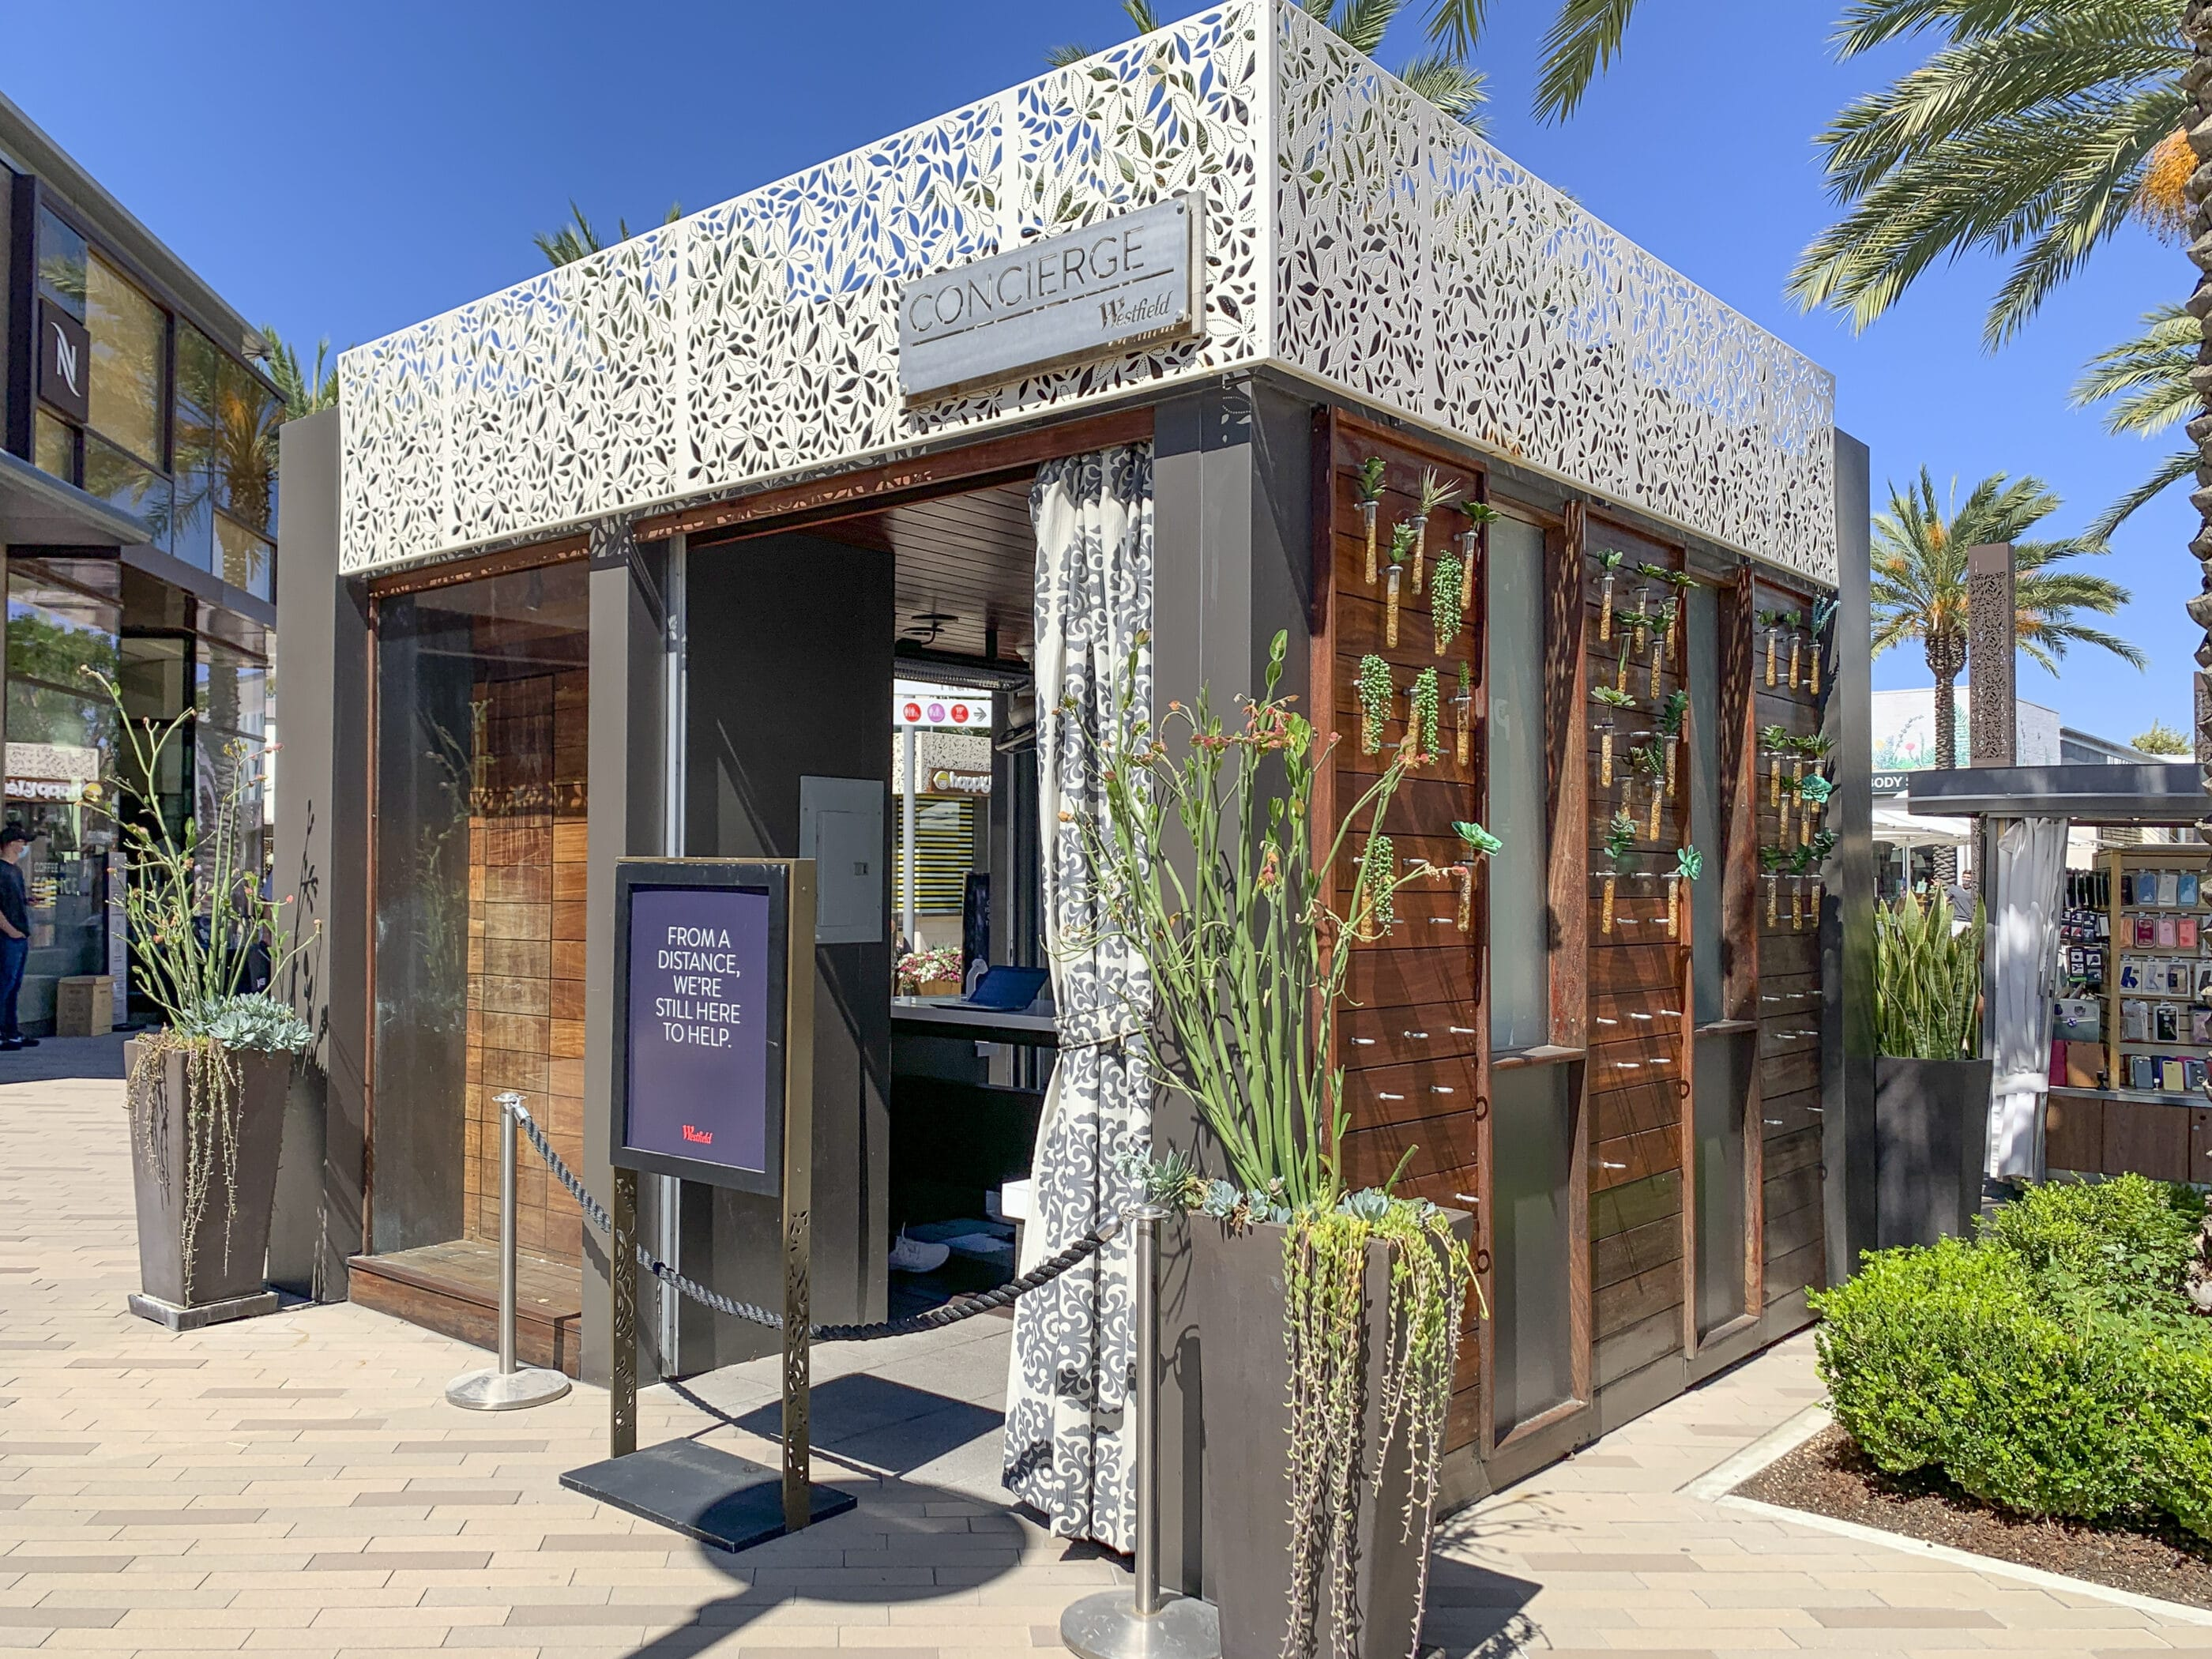 The concierge kiosk at Westfield UTC mall in La Jolla surrounded by succulent planters.